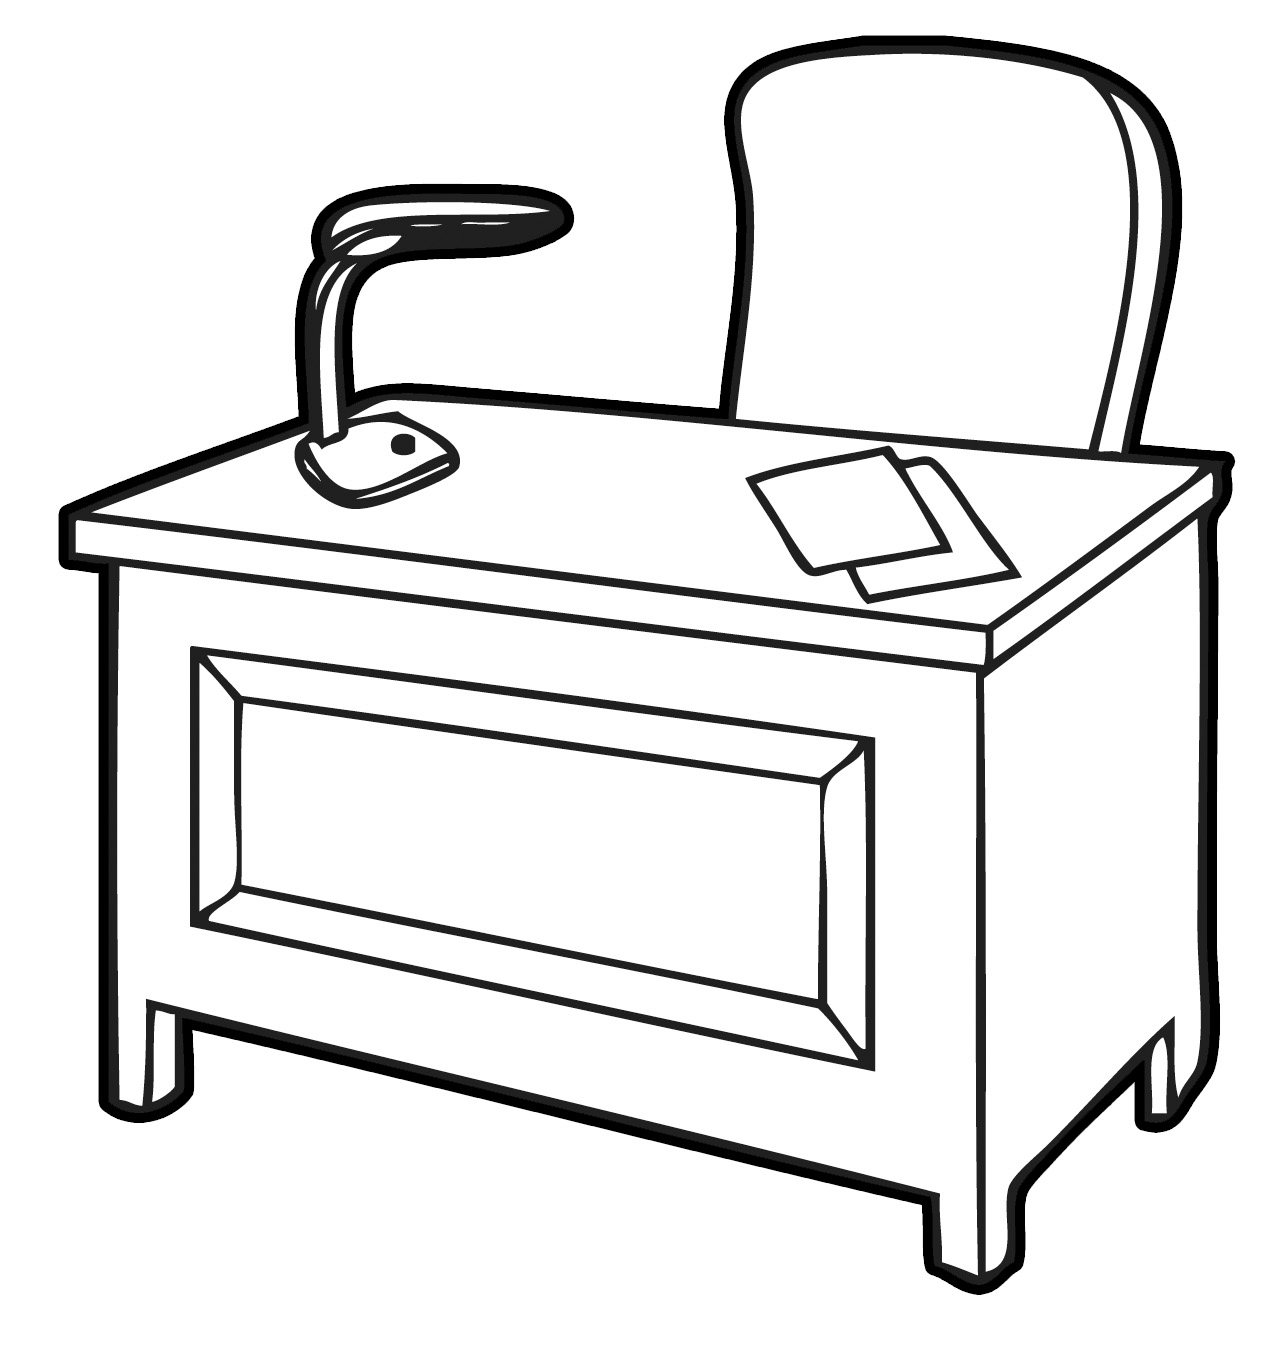 Free black desk cliparts. Furniture clipart household supply